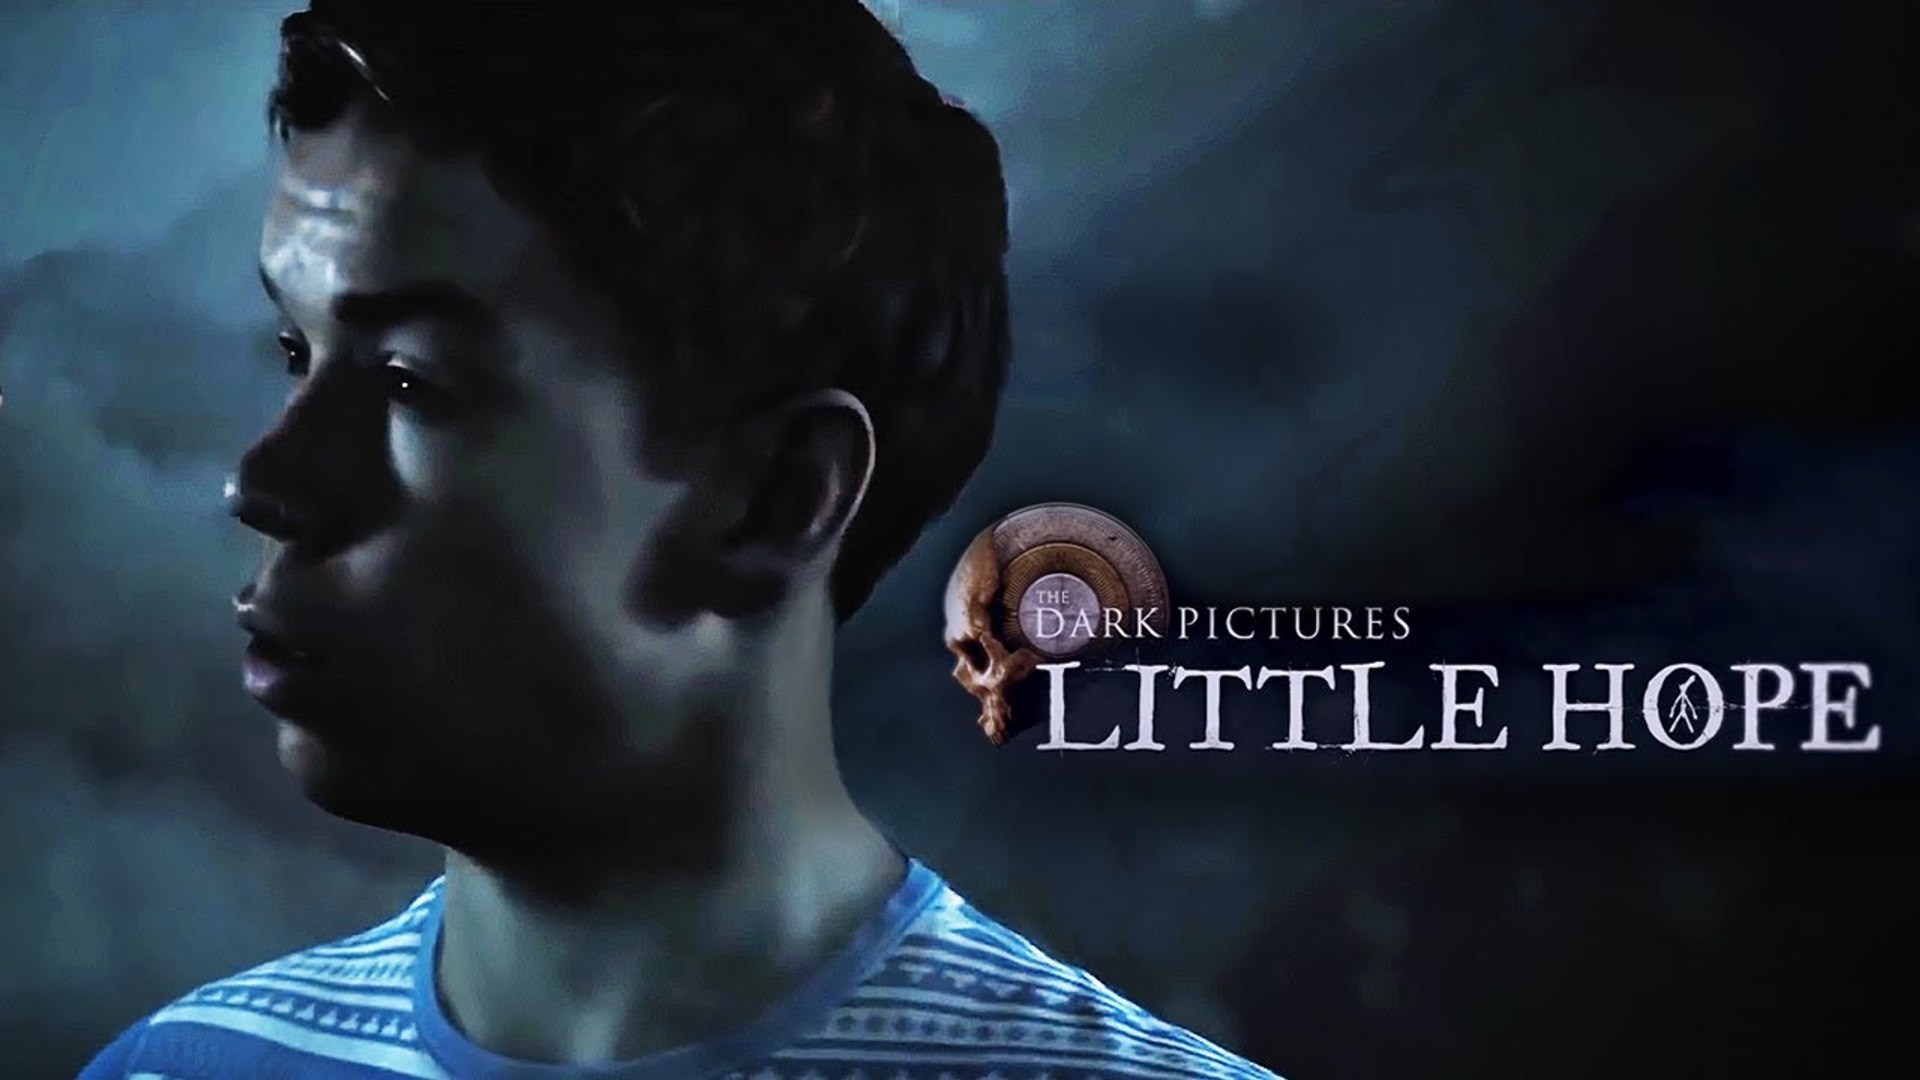 The Dark Picture Little hope